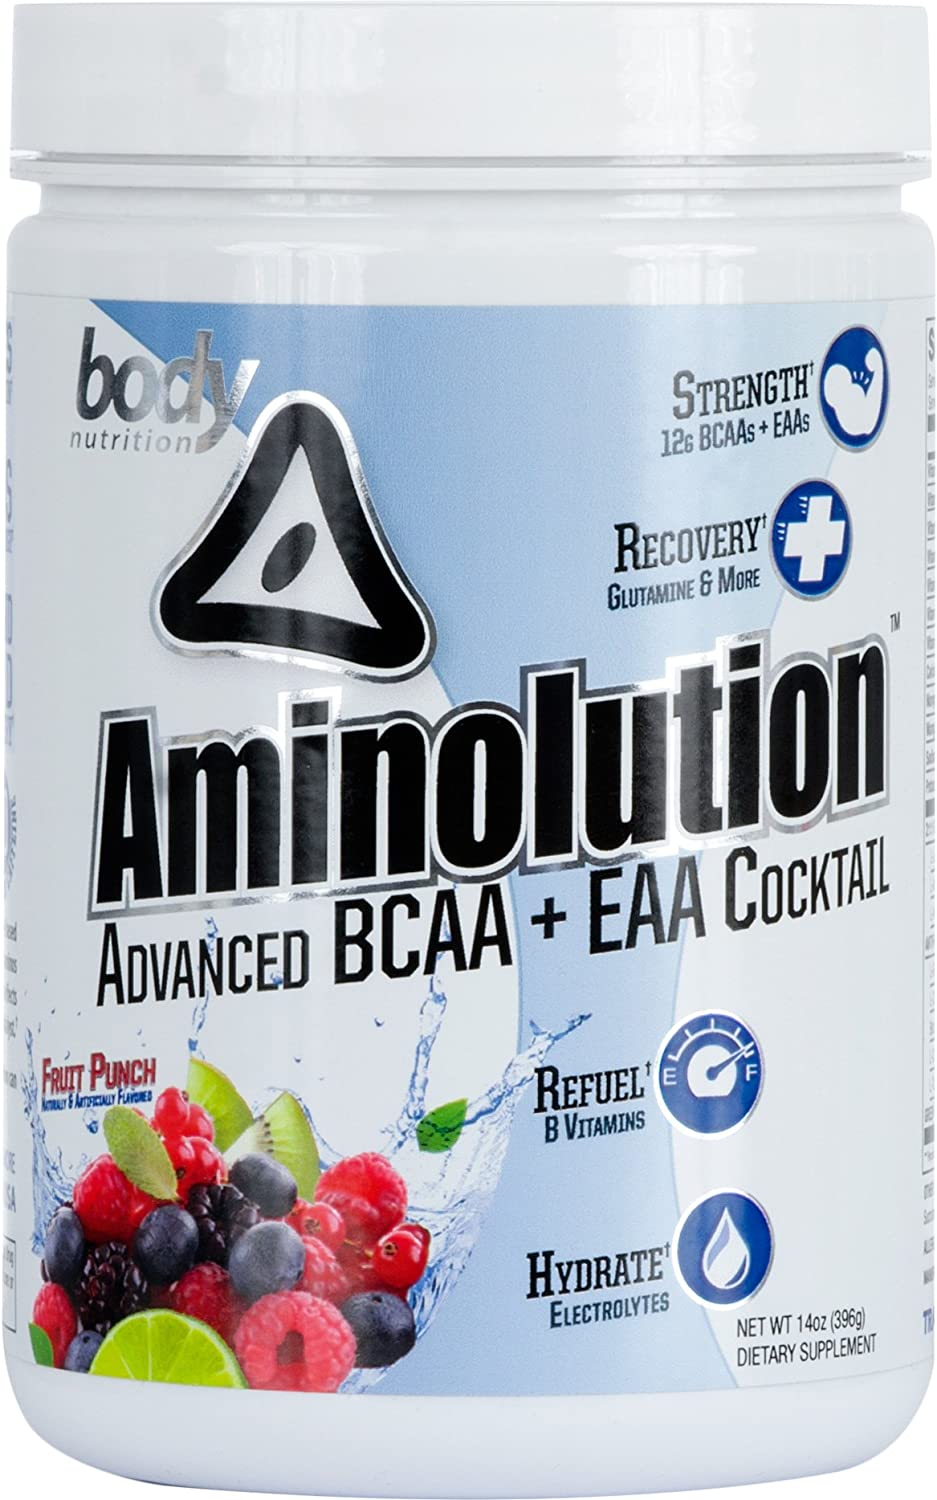 Body Nutrition Aminolution Fruit Punch Advanced BCAA EAA Cocktail 14 Oz